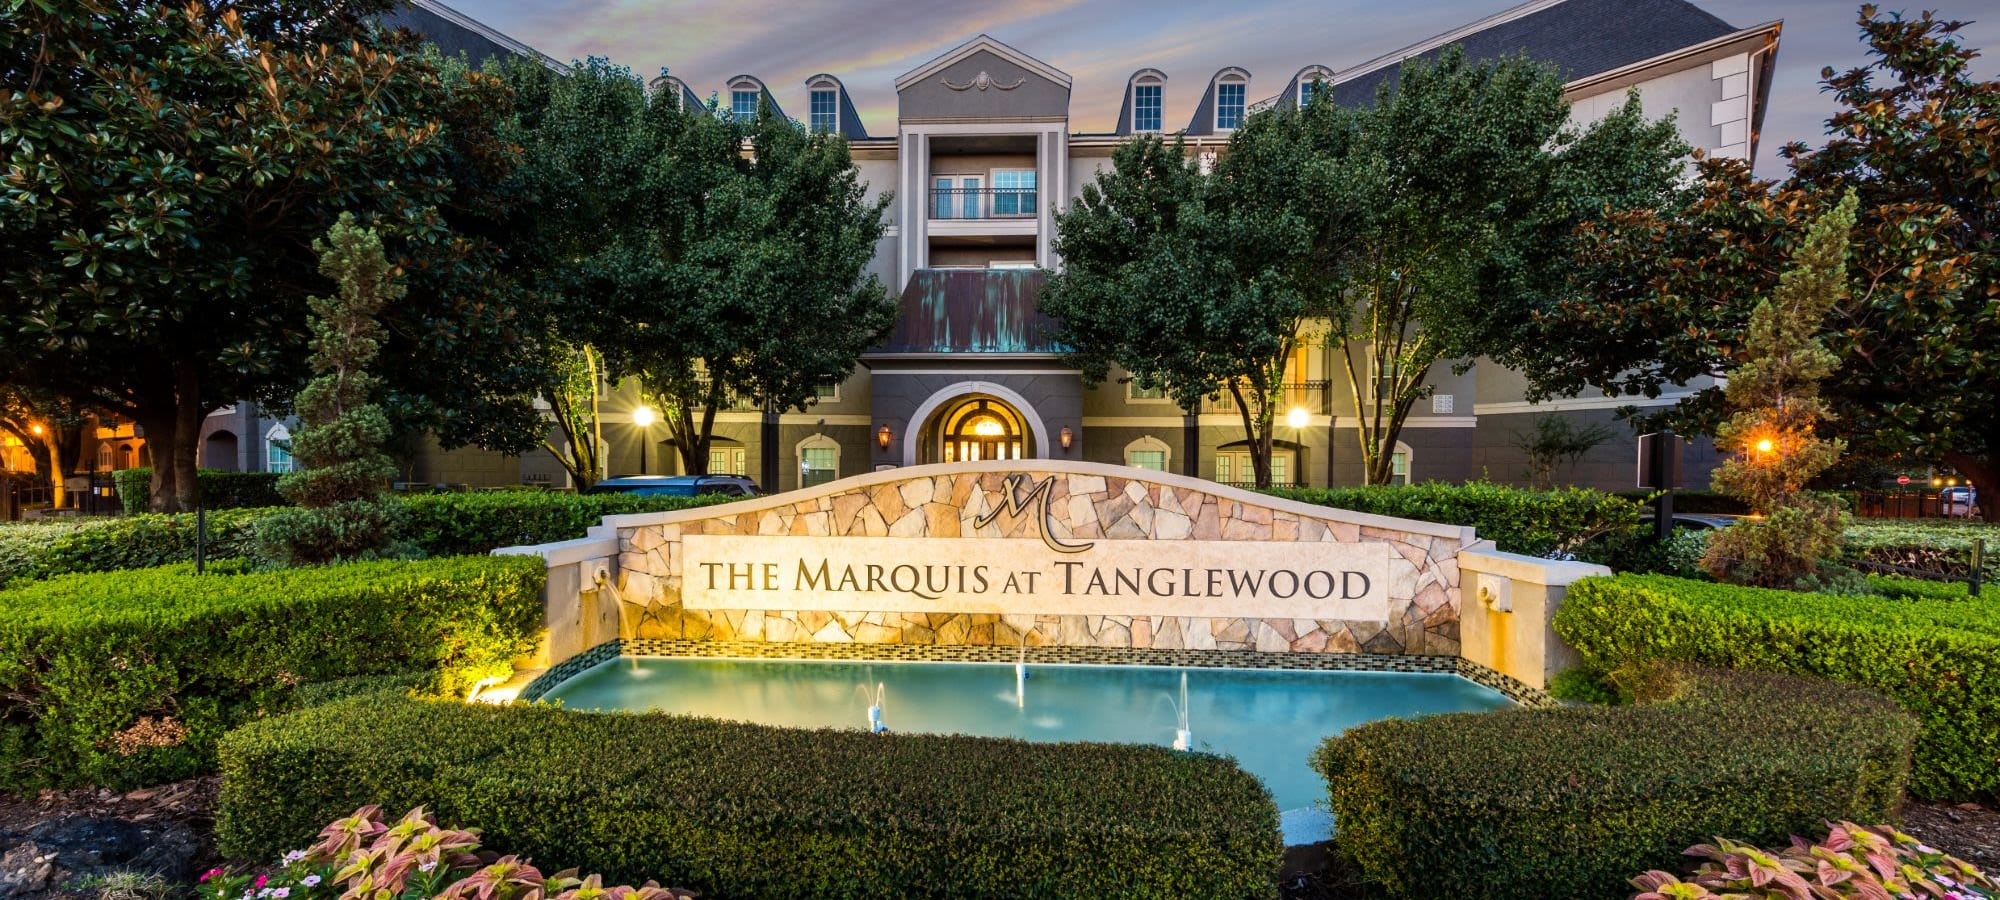 Gallery of photos for Marquis at Tanglewood in Houston, Texas